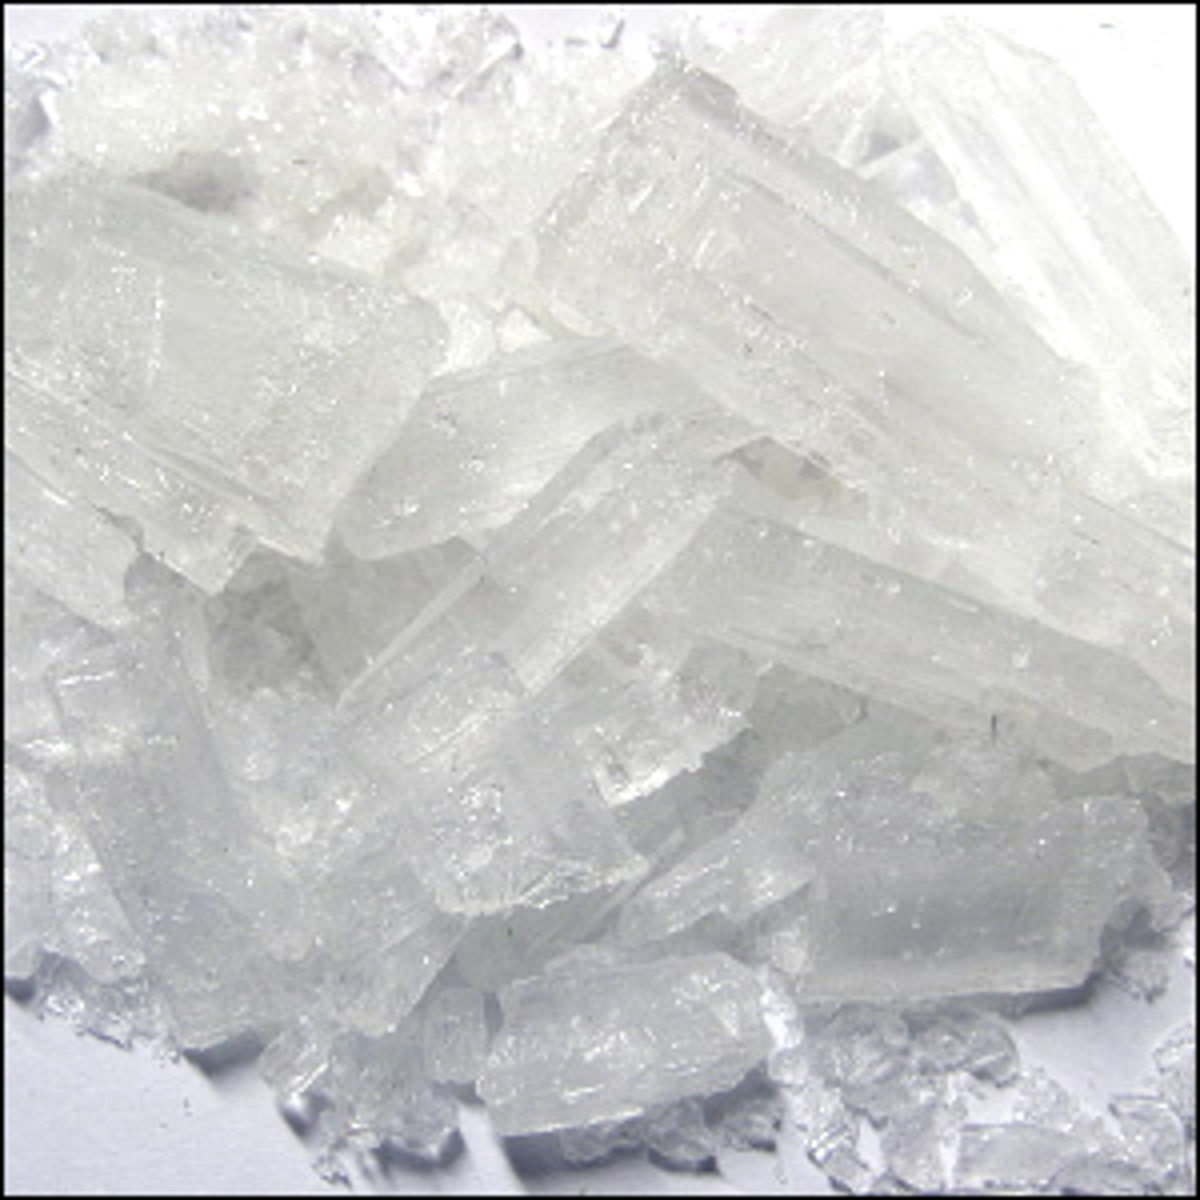 A batch of Lead(II)Acetate trihydrate crystals.